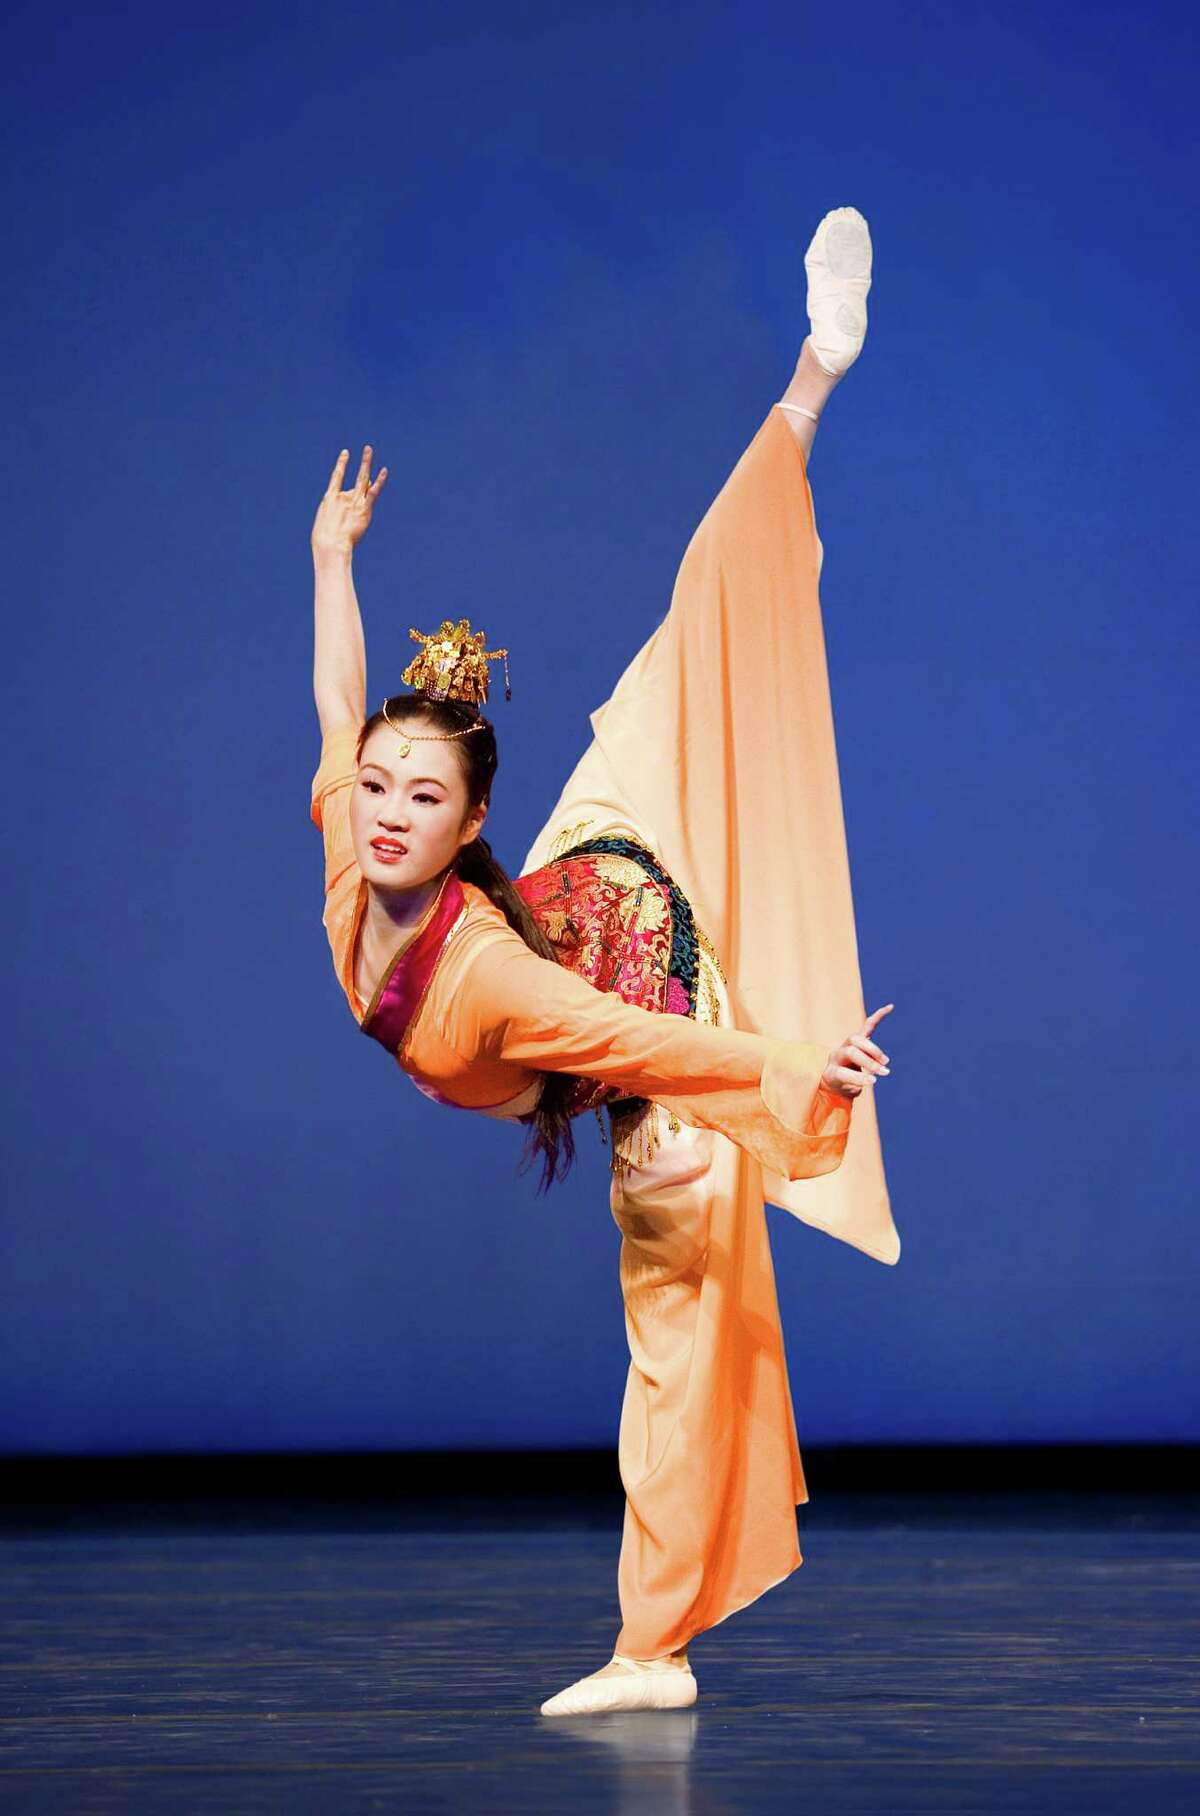 Lily Wang, a dancer with Shen Yun Performing Arts, will appear at the Palace Theater in Waterbury this week. The classical Chinese dance group will also be performing at Lincoln Center in New York, Jan. 11-15.